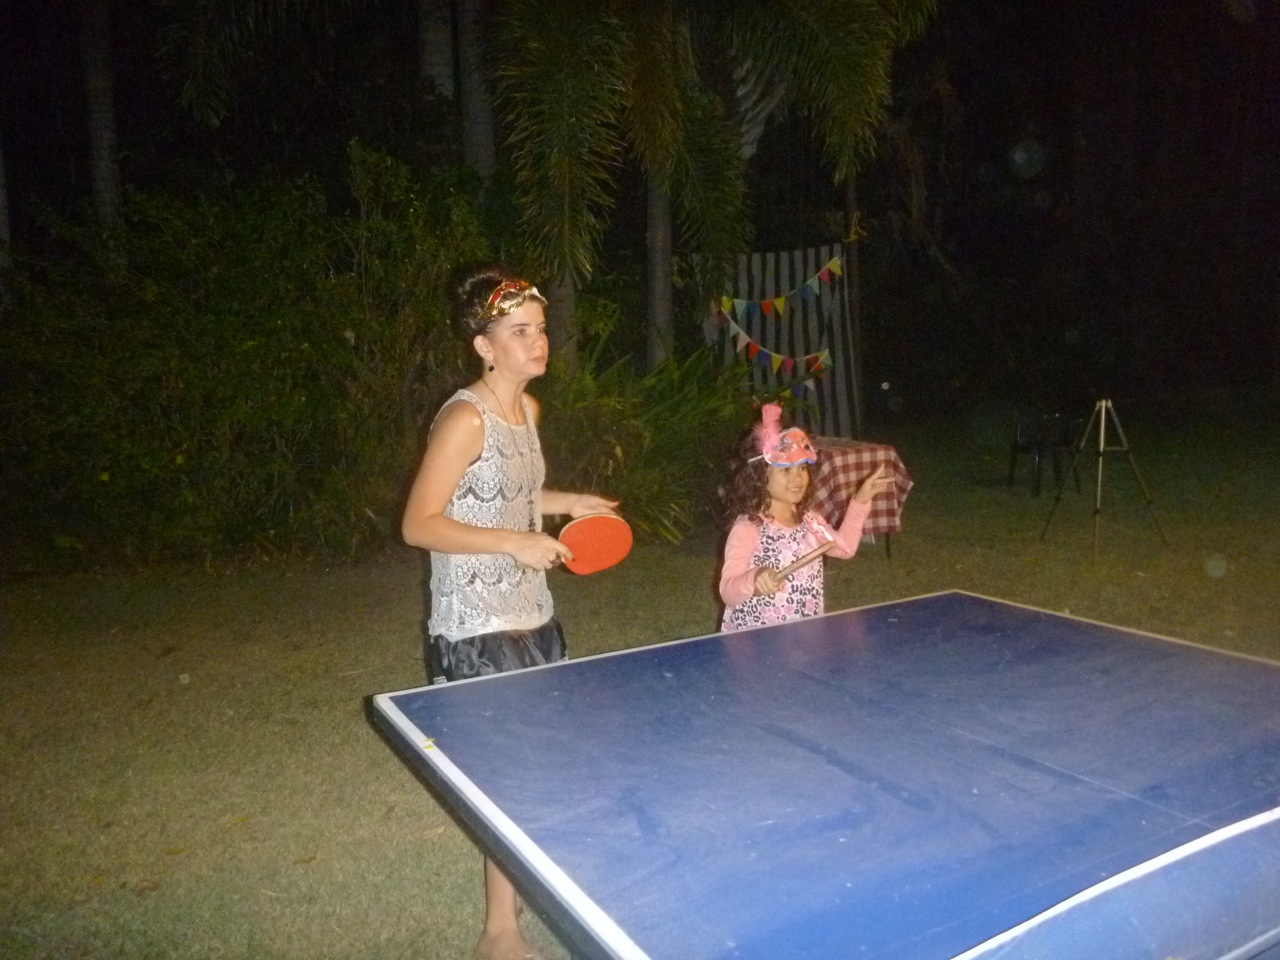 Here is the birthday girl playing Ping Pong with Marisah. My girls love Ping Pong and just recently I bought them a table for our verandah.